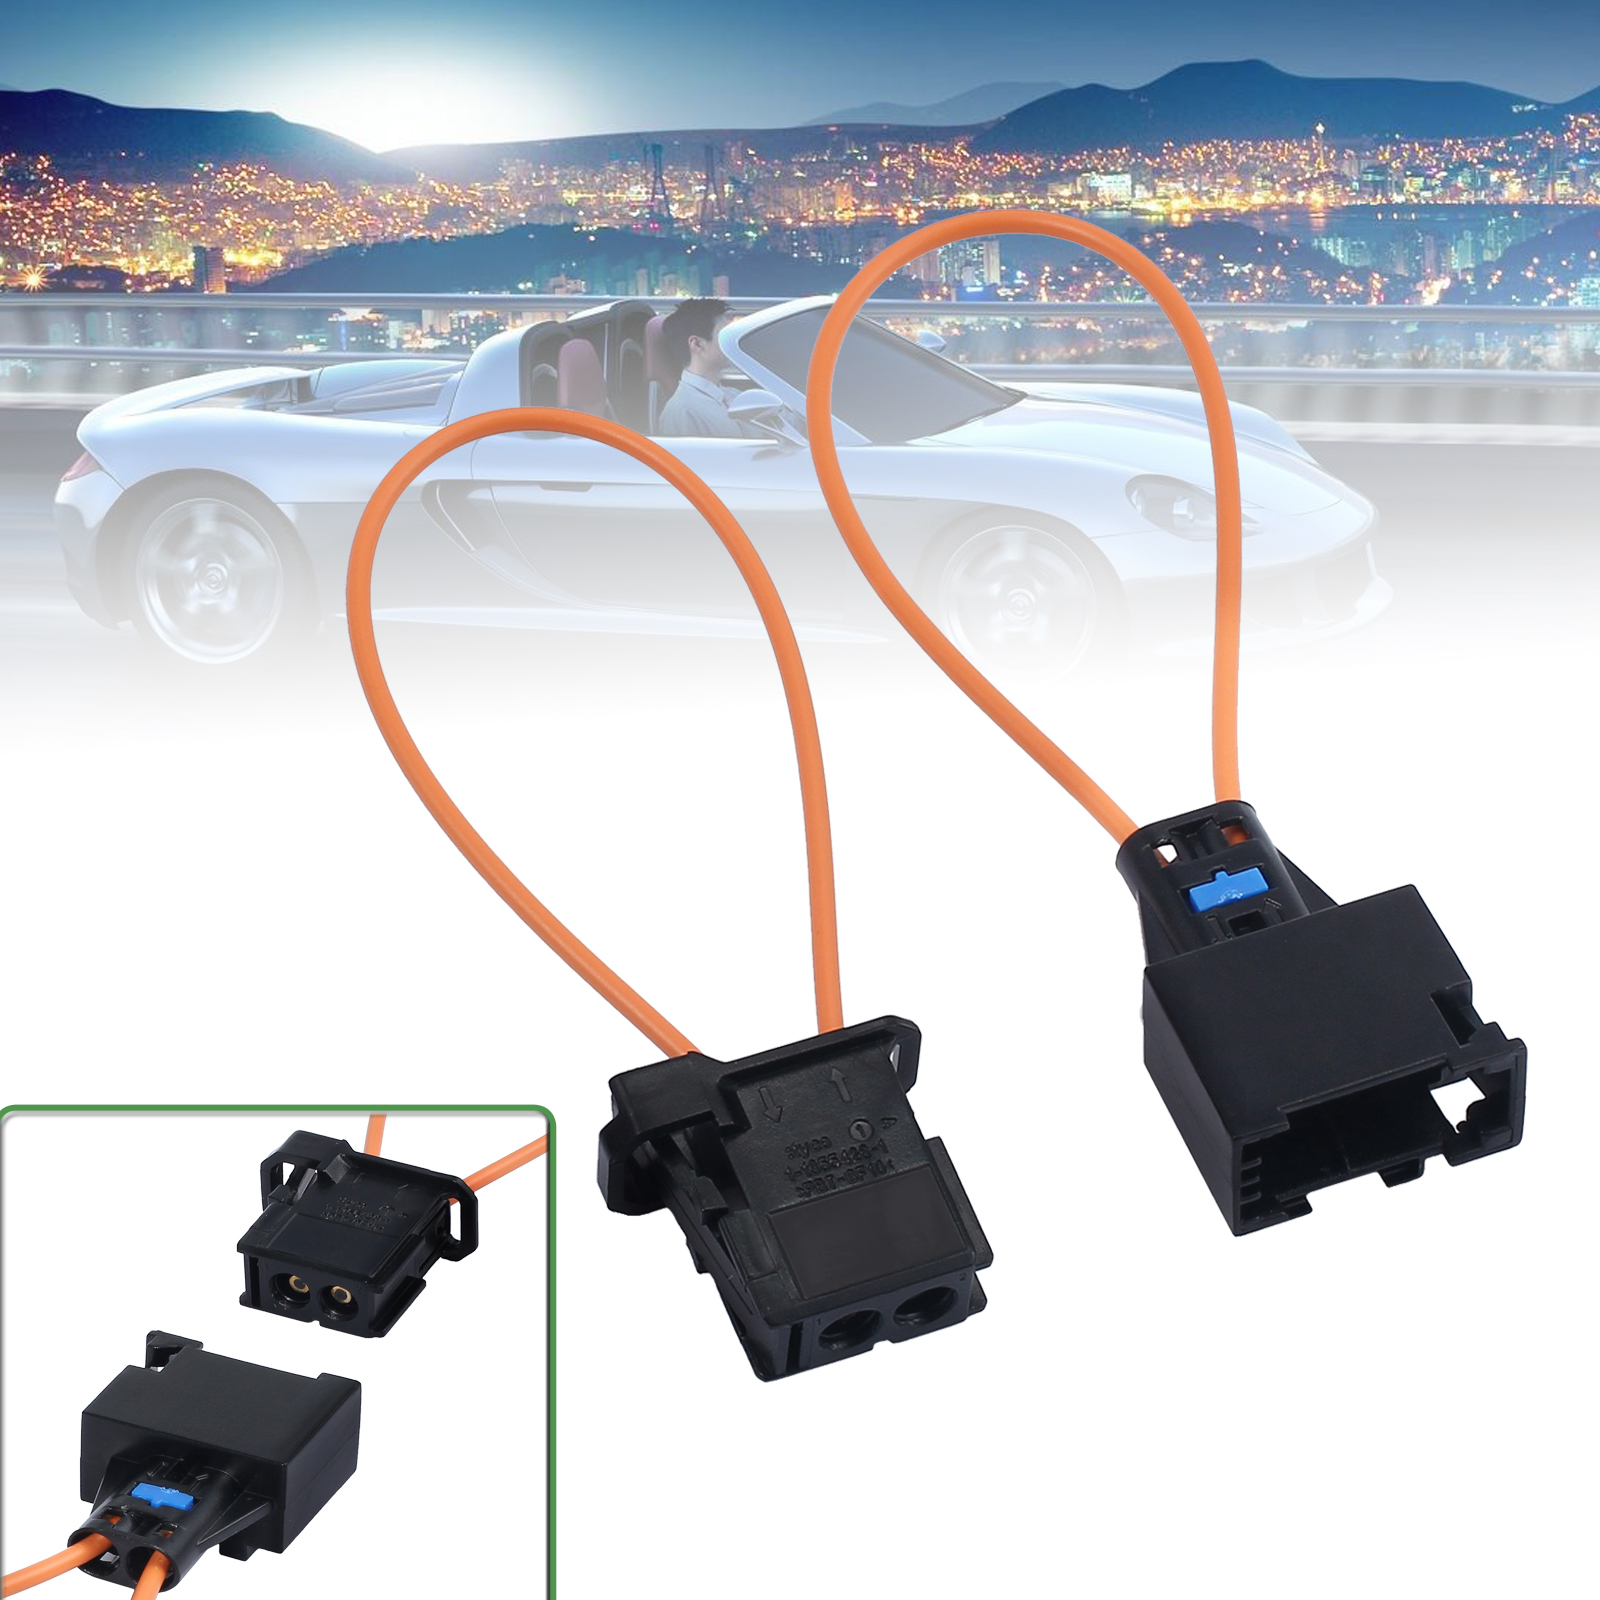 Wiring & Wiring Harnesses MOST Diagnostic Kit Fiber Optic ... on multicore cable, cable management, direct-buried cable, cable reel, cable dressing, cable carrier,